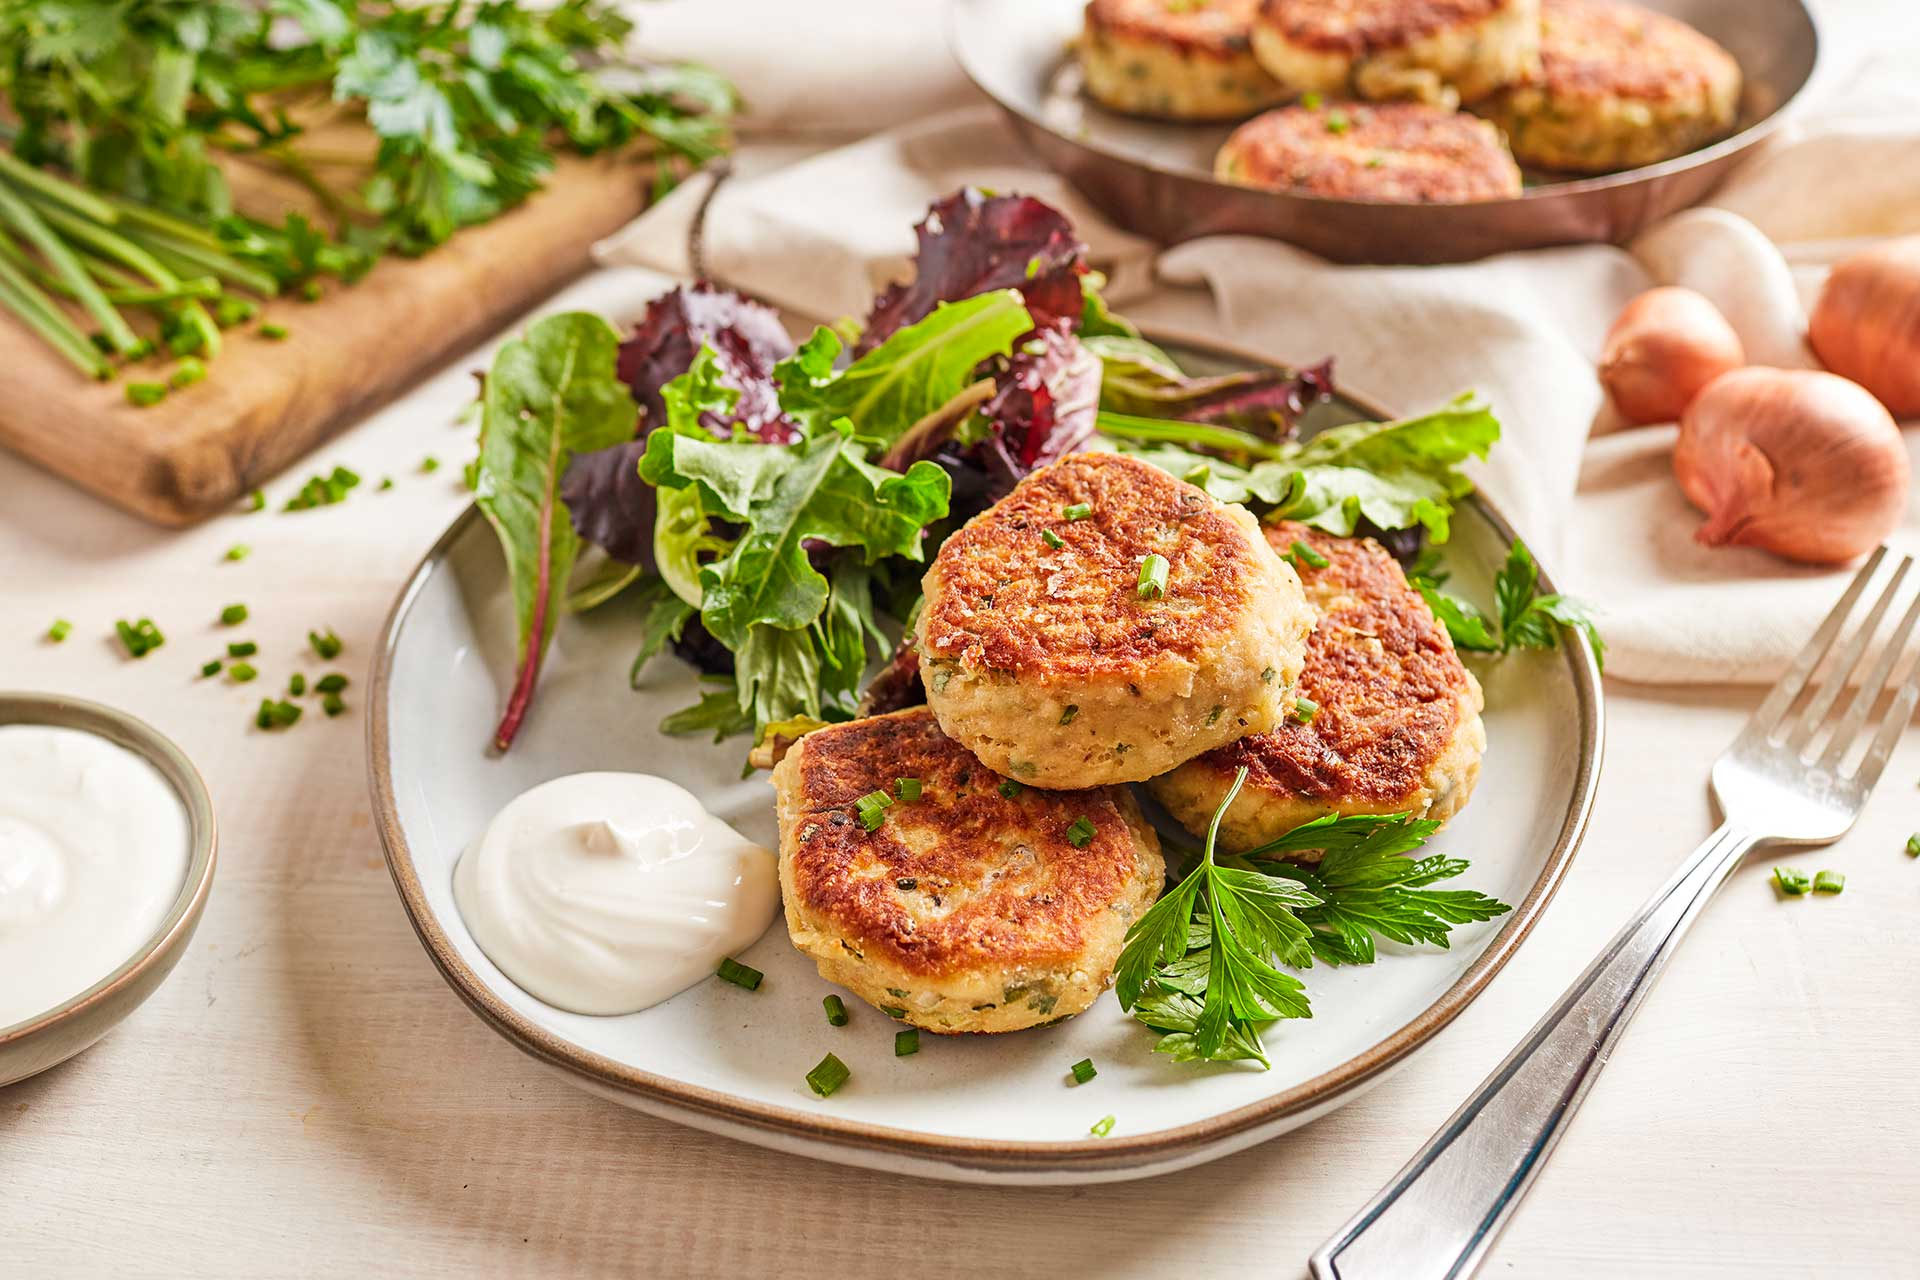 Tuna Patties Fried in Olive Oil (France)